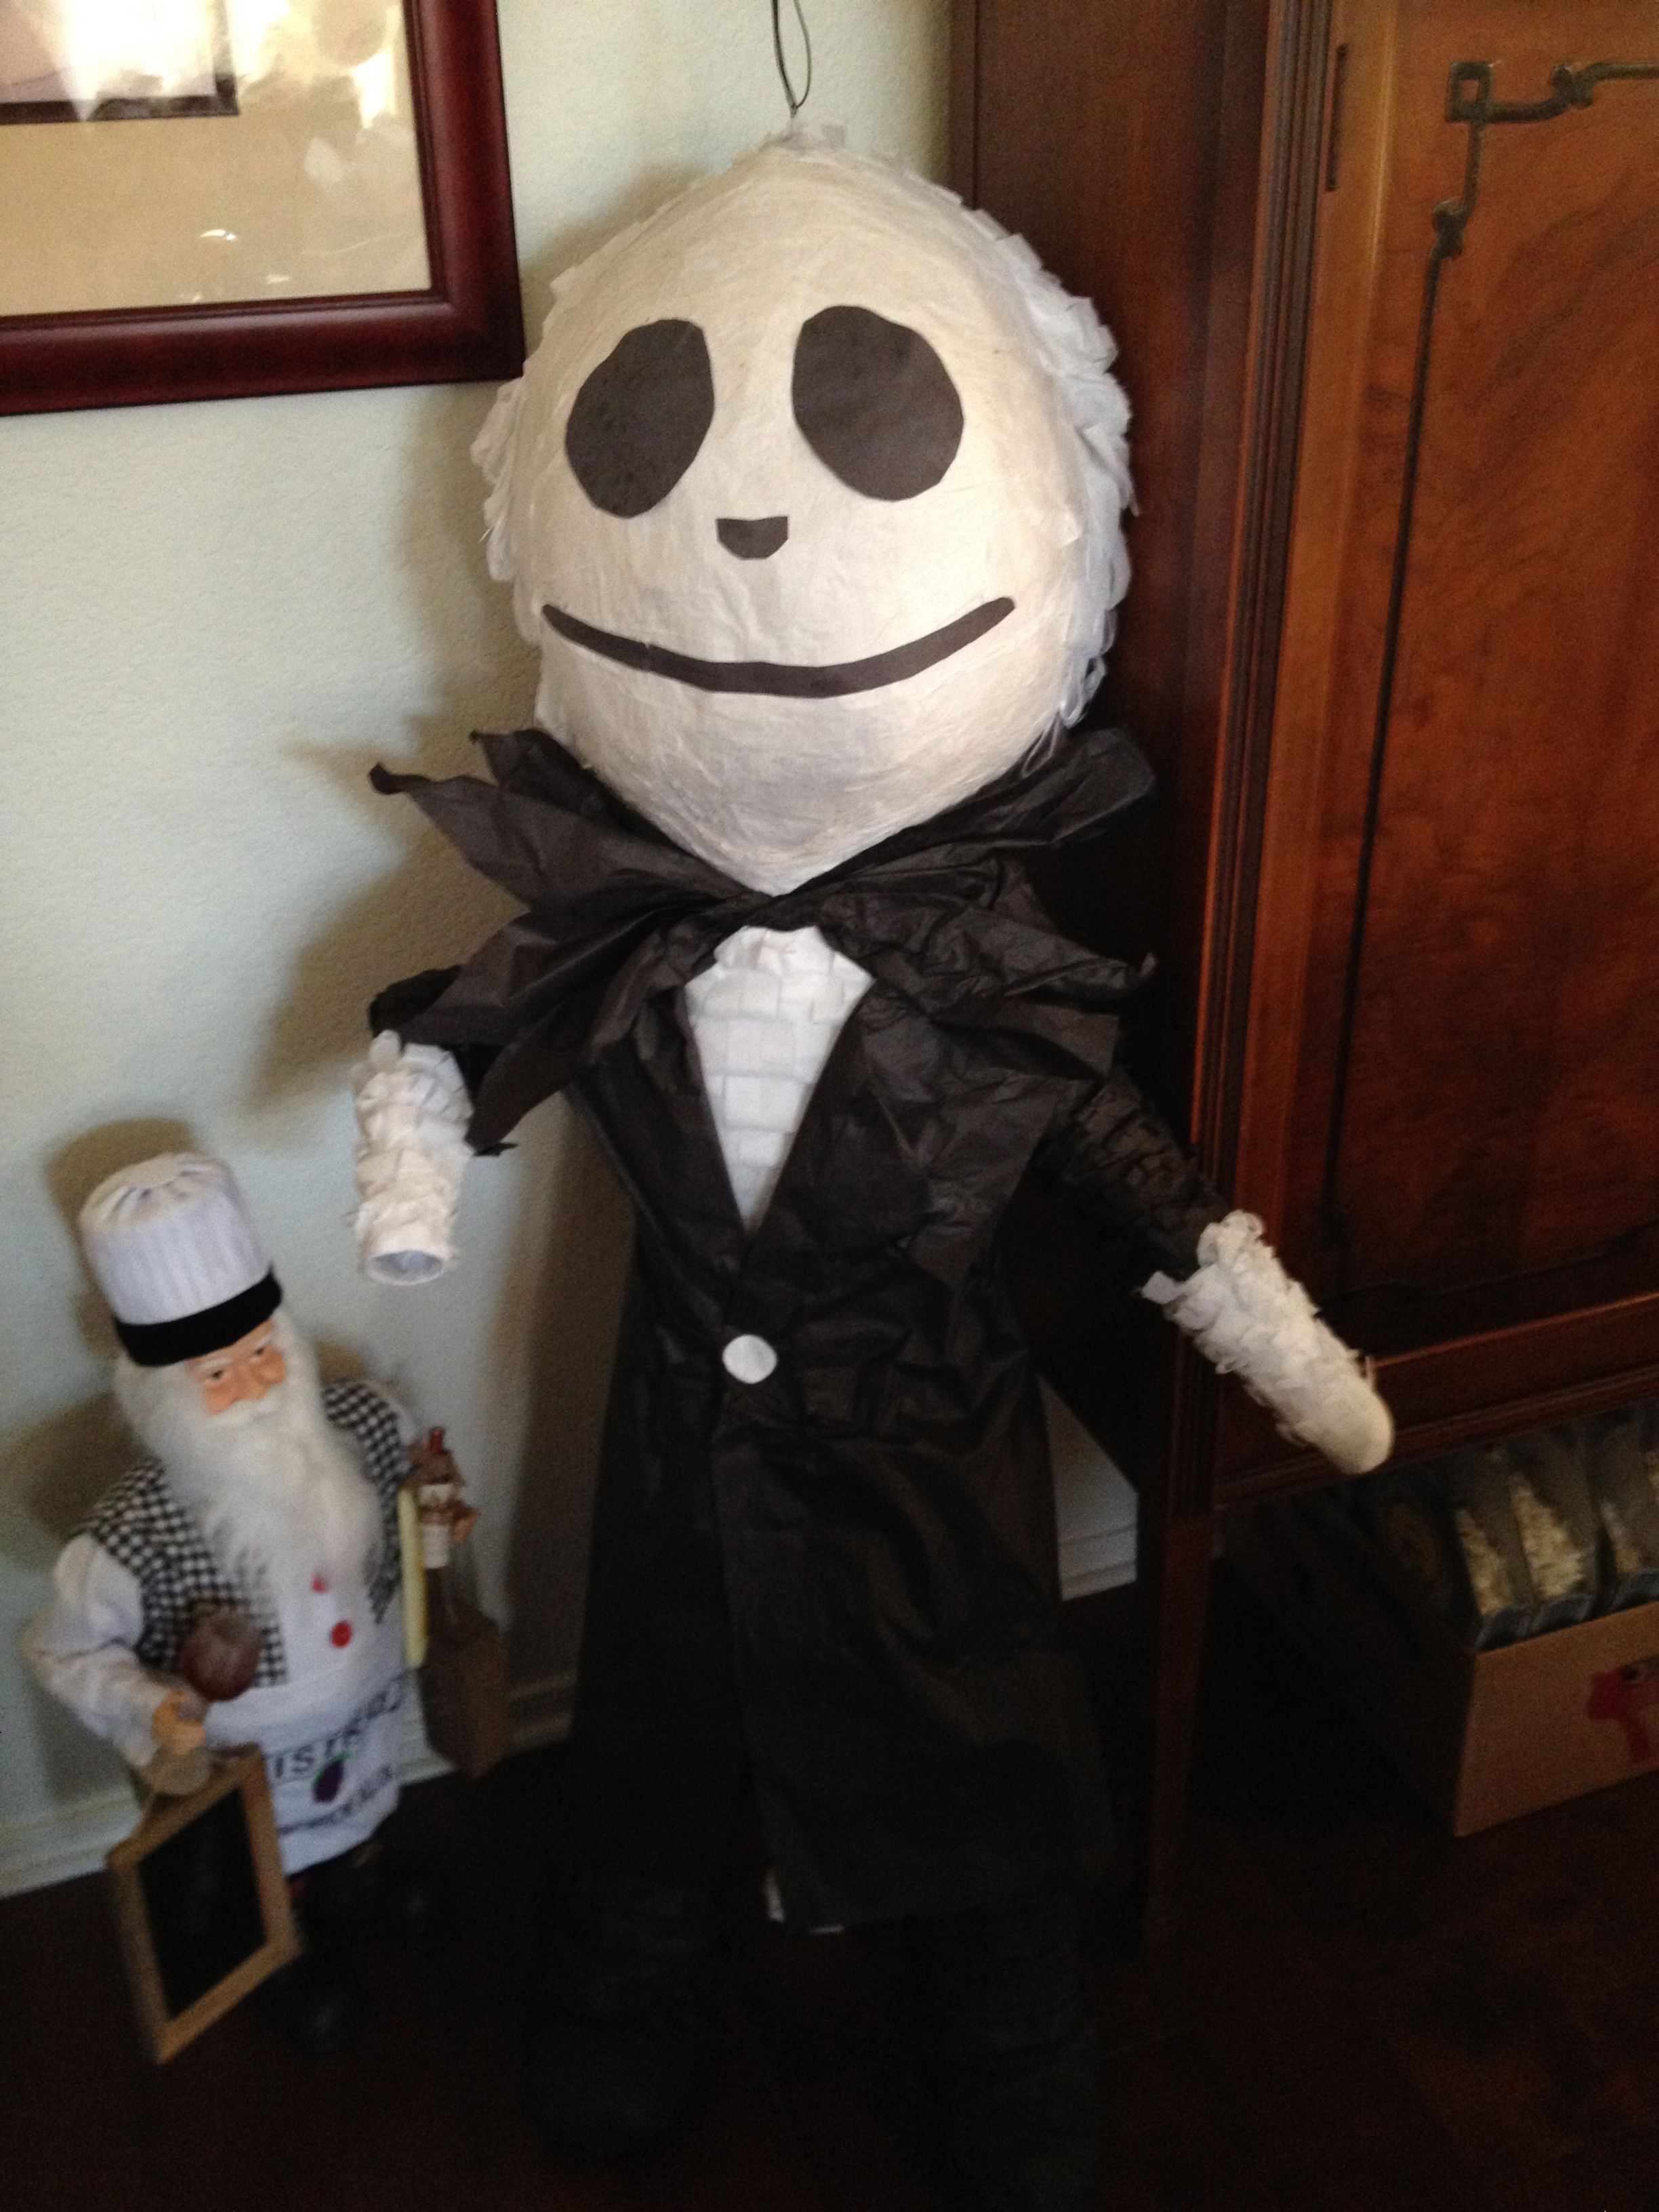 This was our adorable piñata of Jack Skellington custom made by La